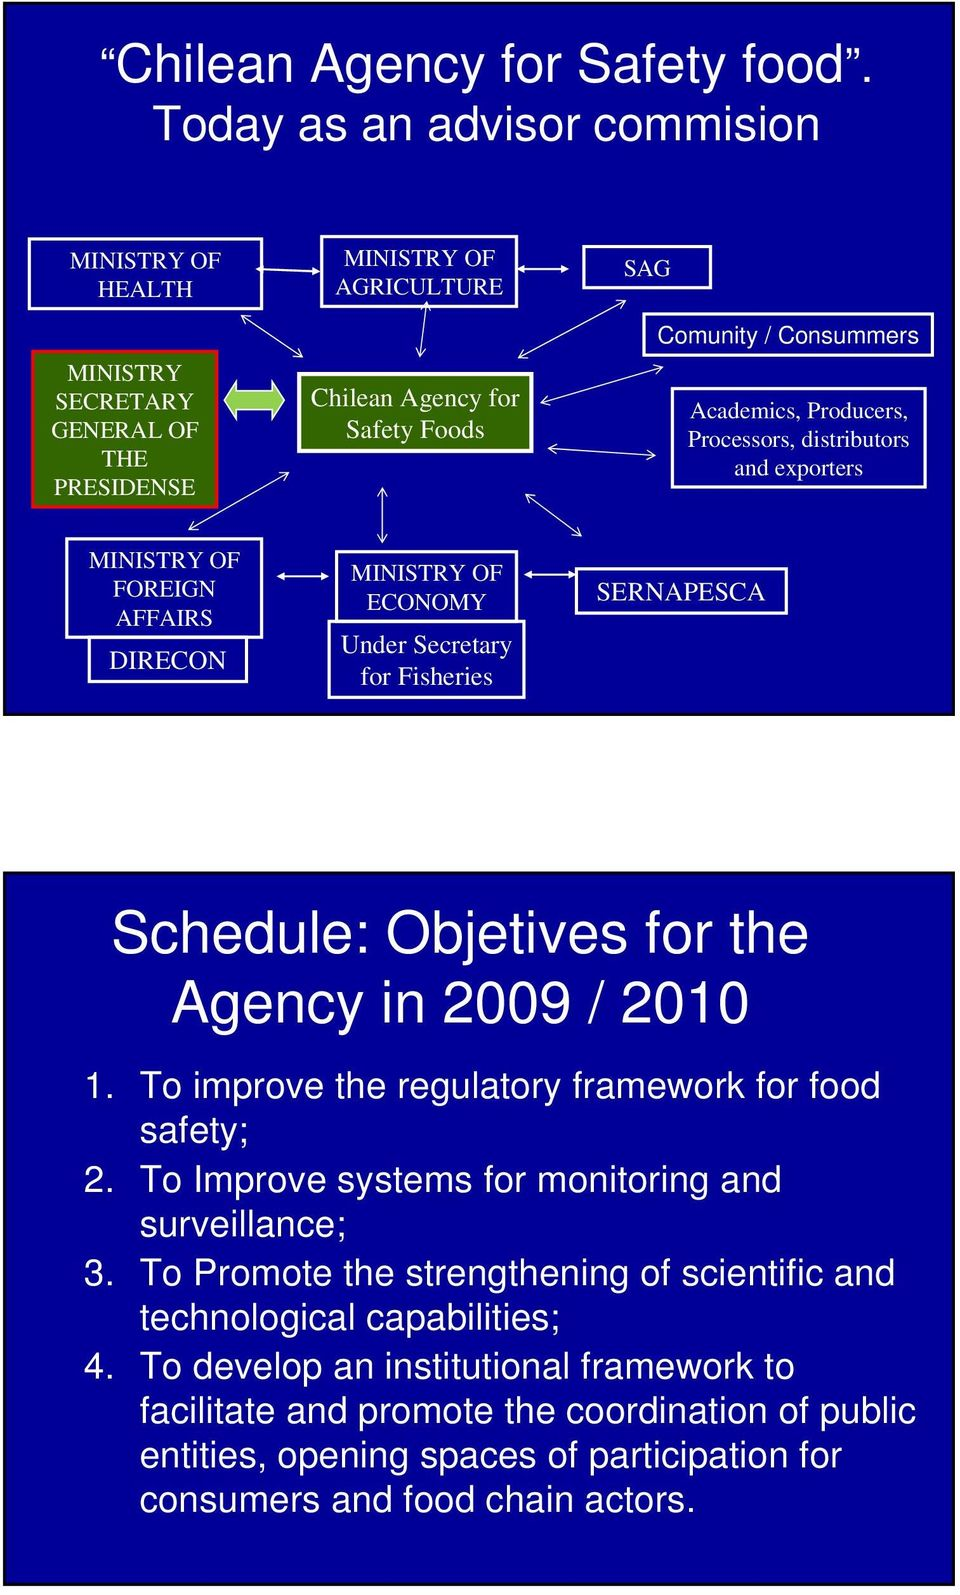 Producers, Processors, distributors and exporters MINISTRY OF FOREIGN AFFAIRS DIRECON MINISTRY OF ECONOMY Under Secretary for Fisheries SERNAPESCA Schedule: Objetives for the Agency in 2009 /